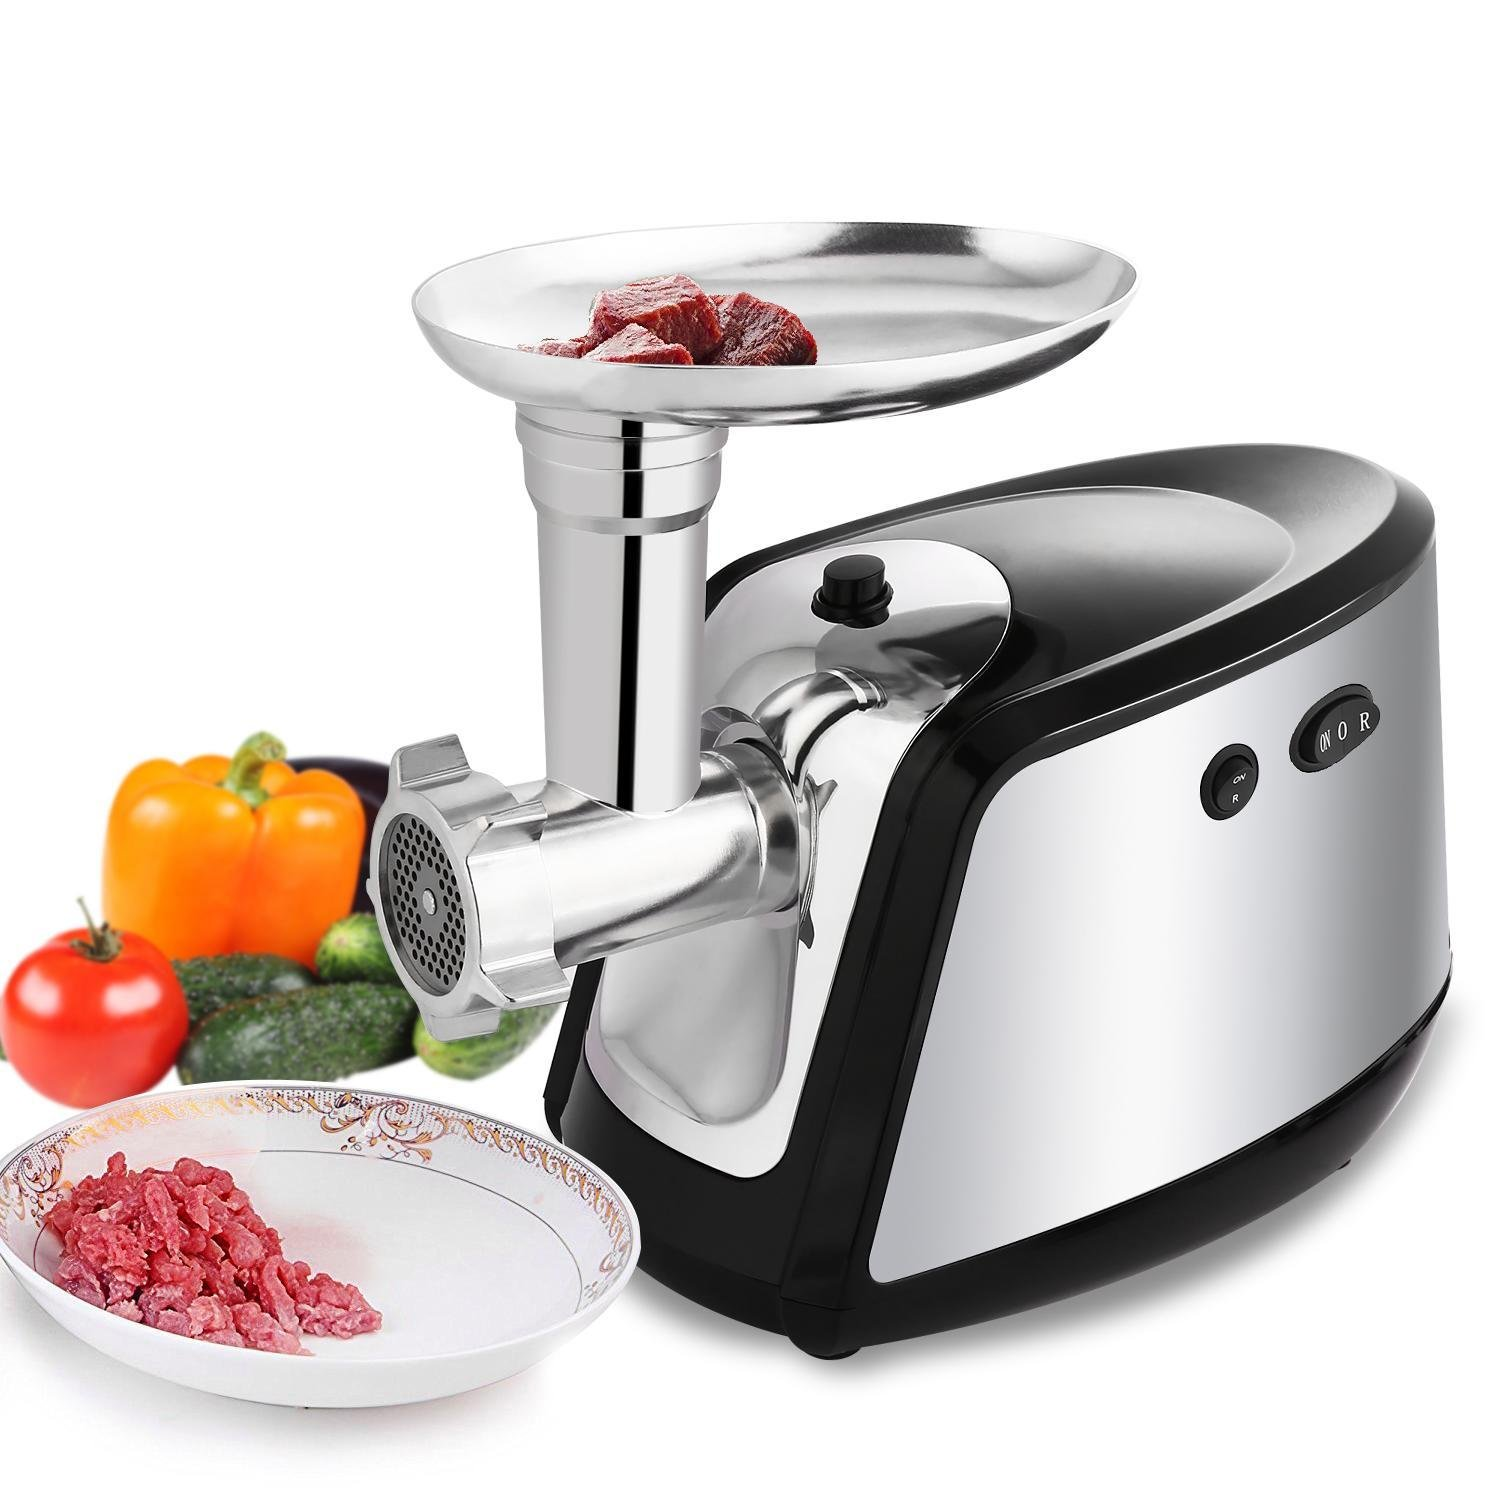 Utheing Electric Meat Grinder 1000W with Sausage Maker, 3 Grinding Plates and Stainless Steel Grinding Blades for Home Commercial Use